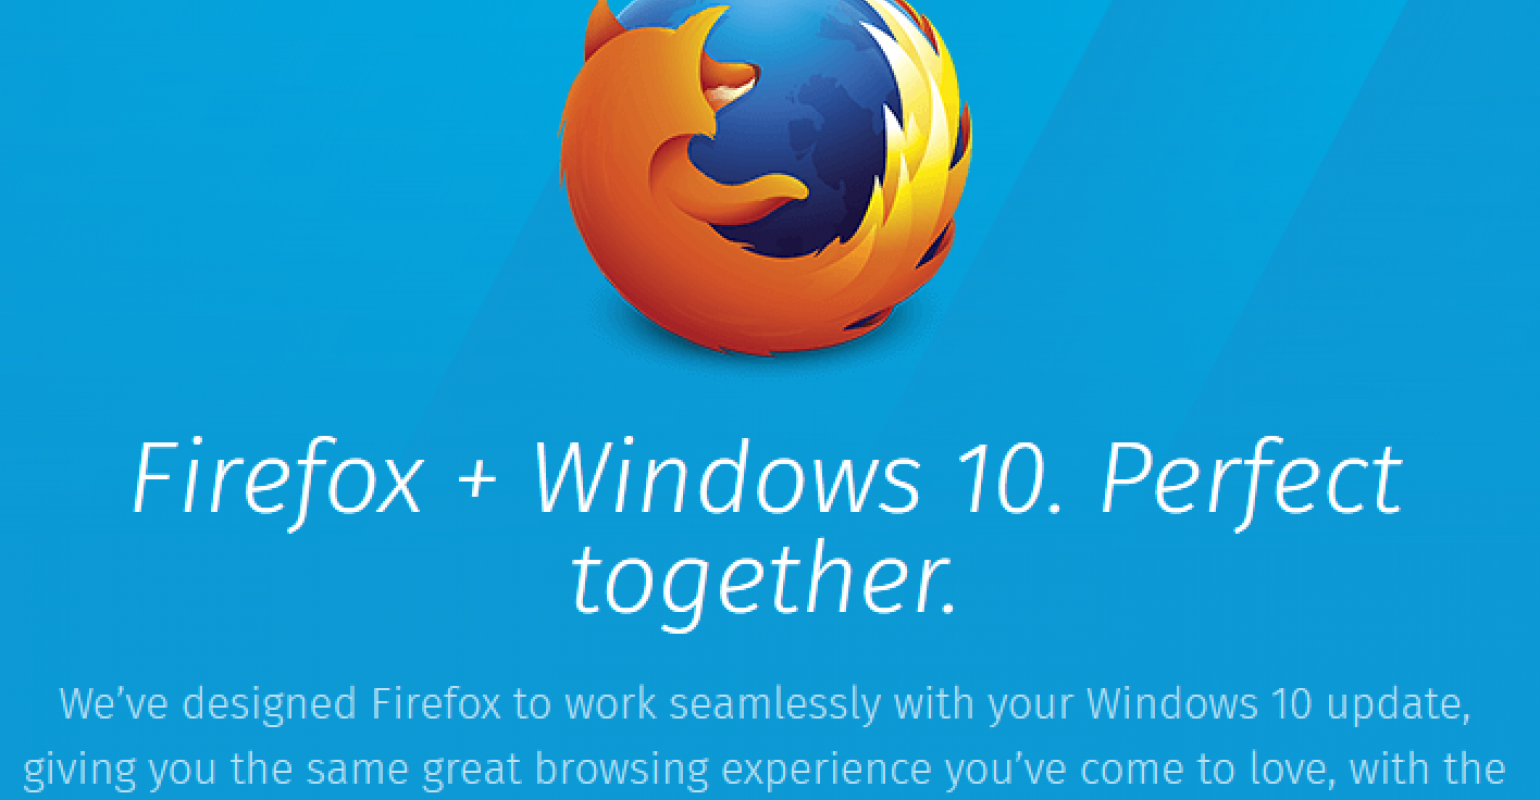 FireFox update supposedly optimizes browsers interface for